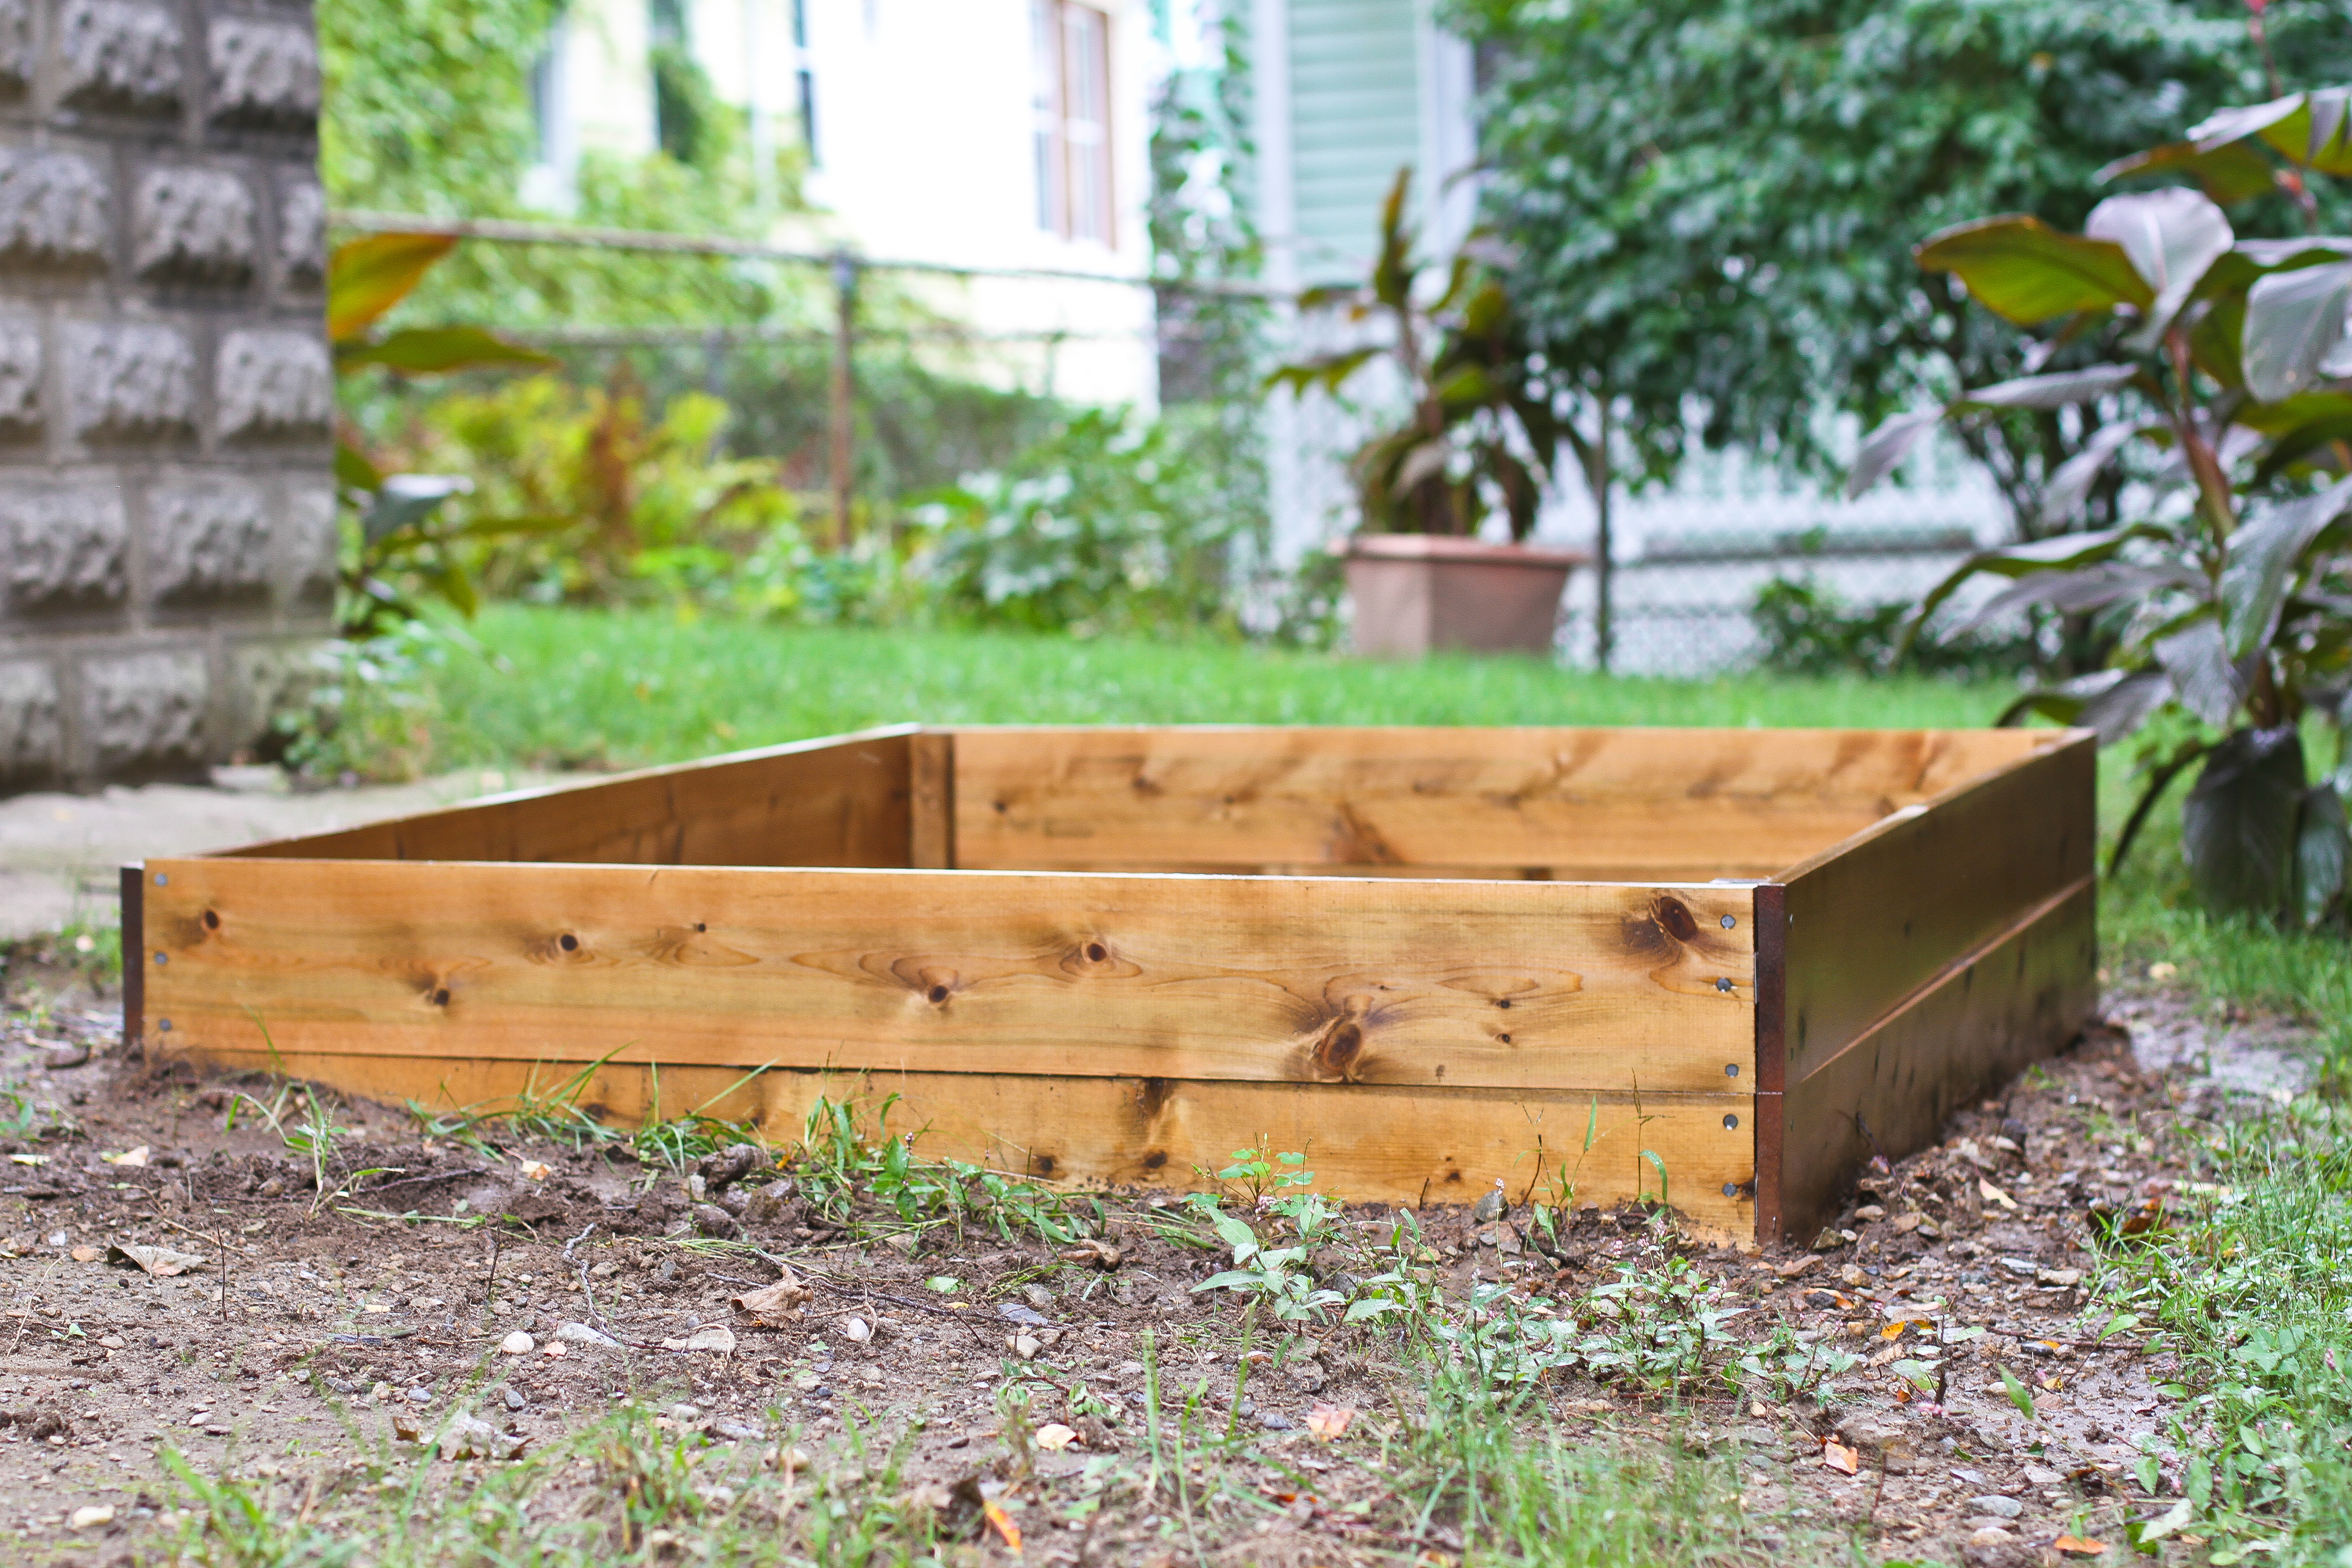 How to start a raised bed garden - Prepare Soil And Start Growing